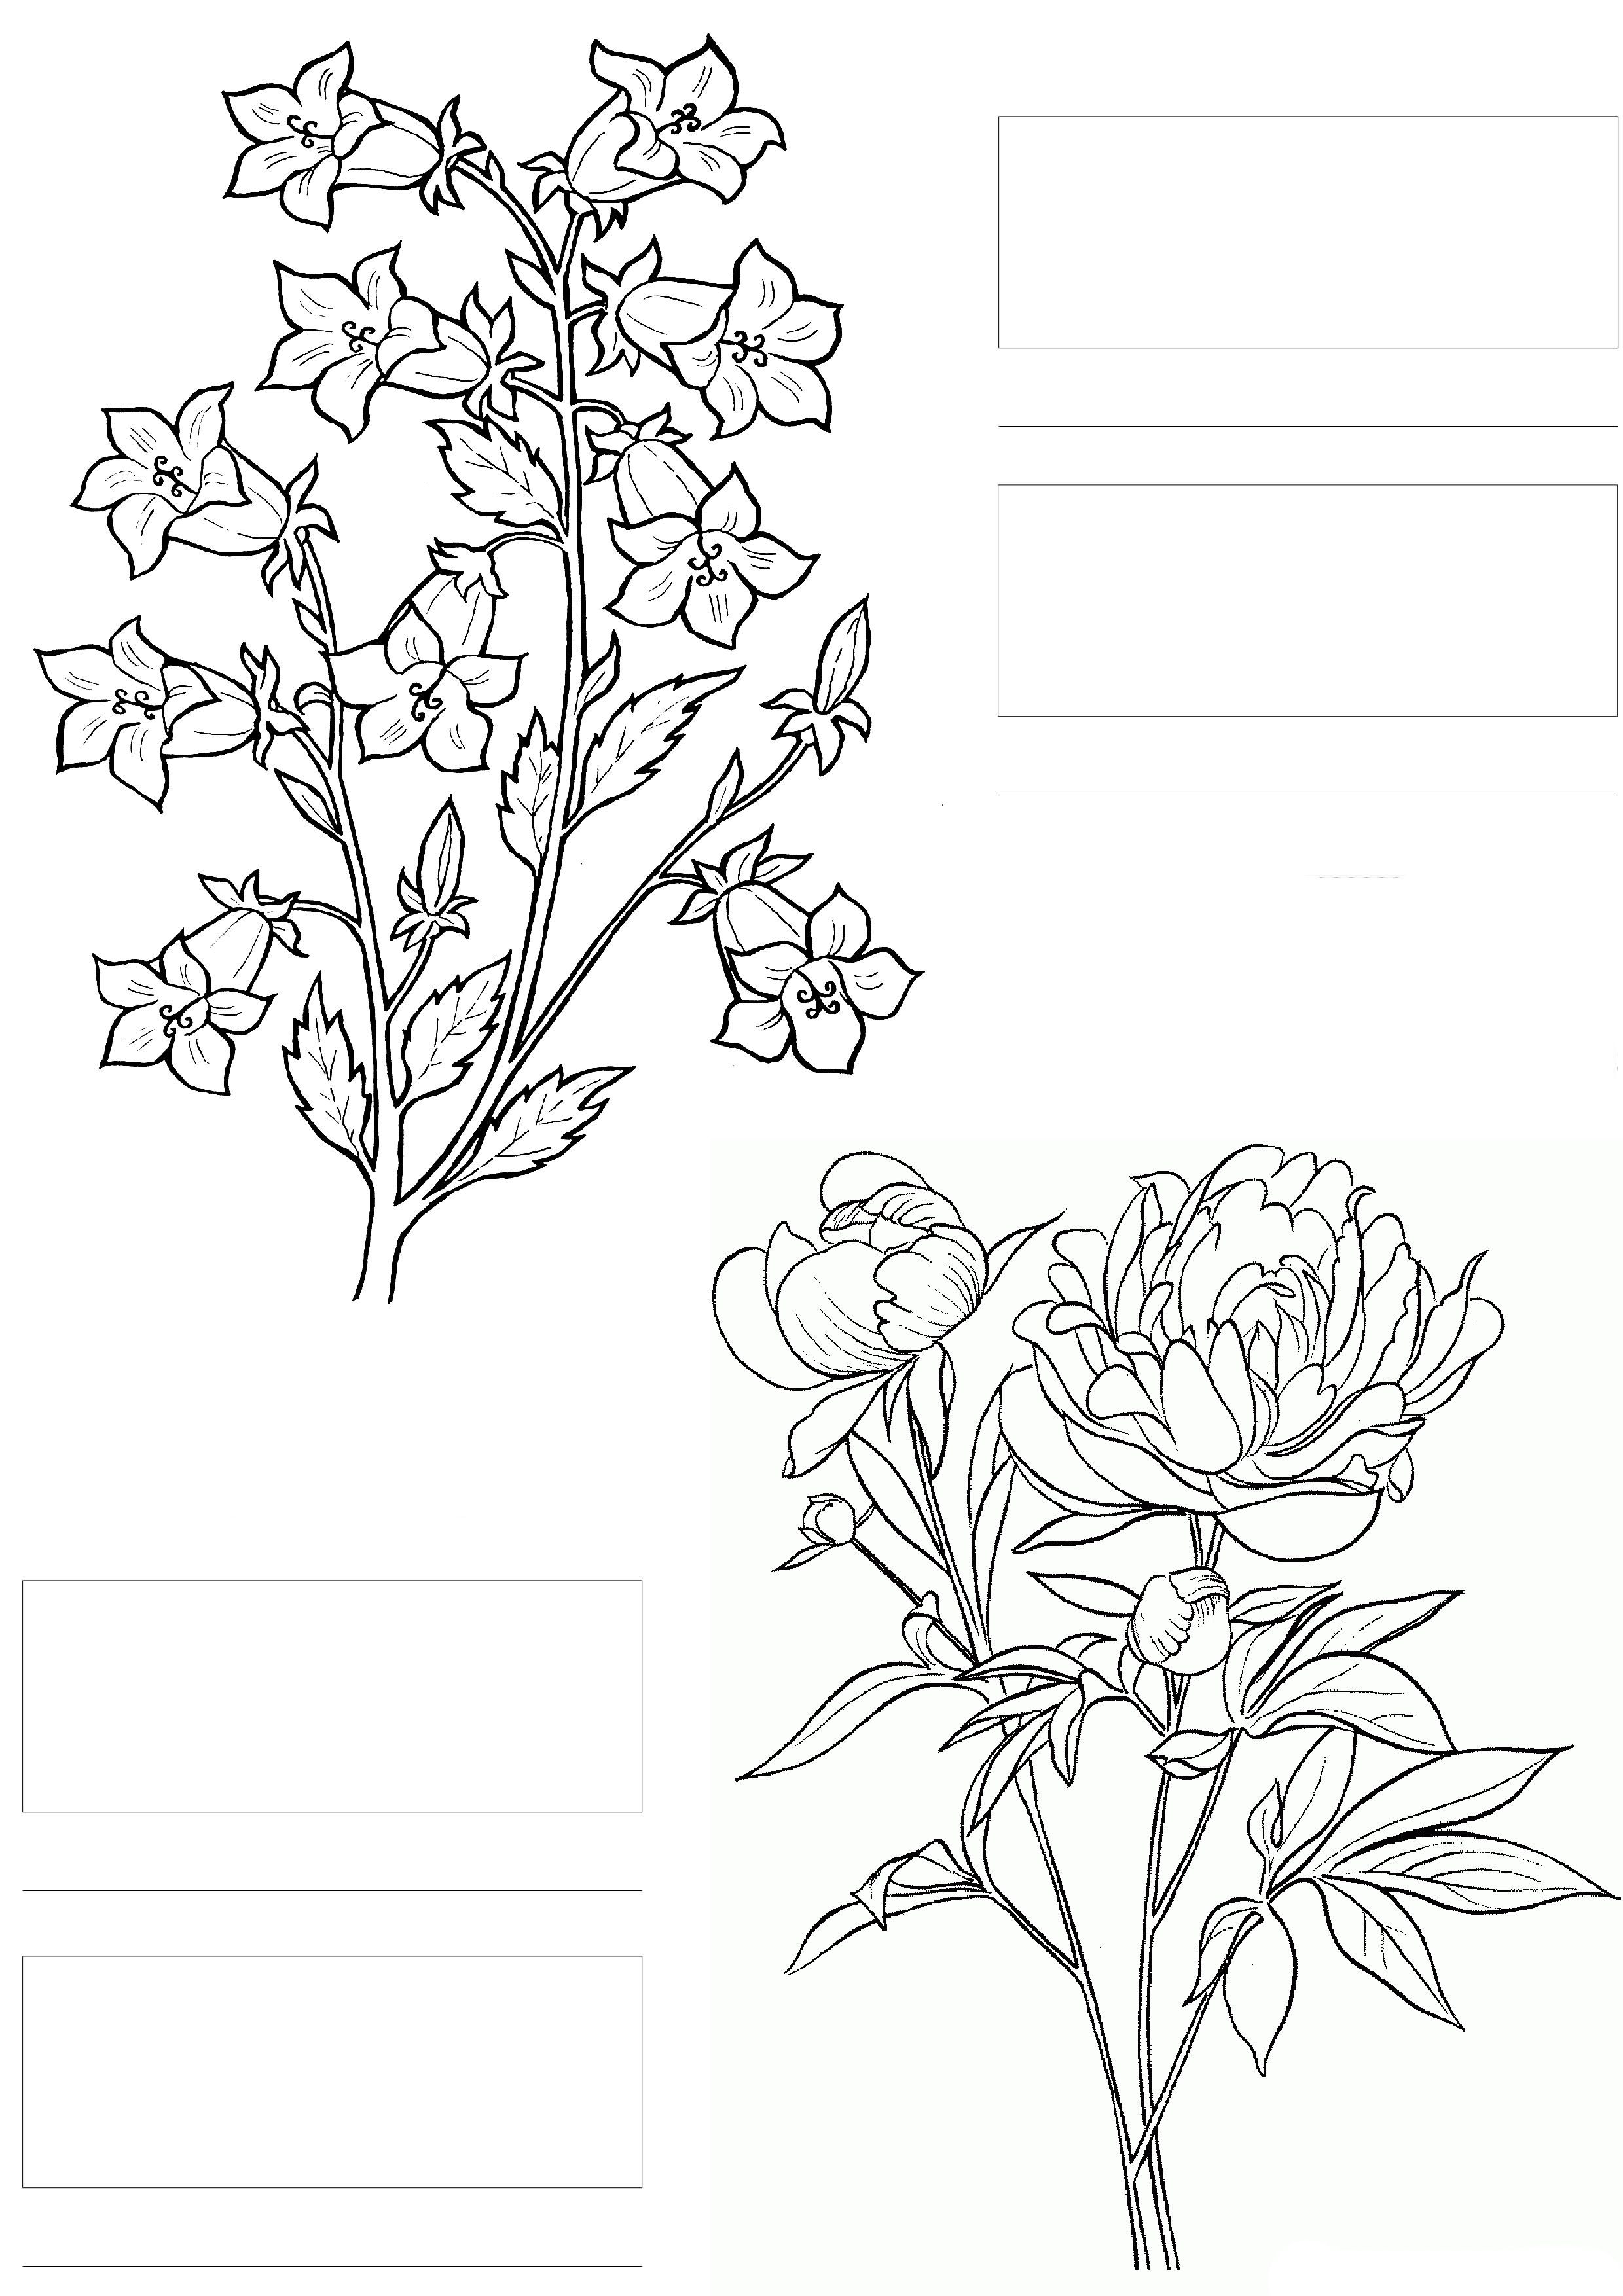 Complicolor Copic Coloring Printable Pages And Coloring Books For Grown Ups At